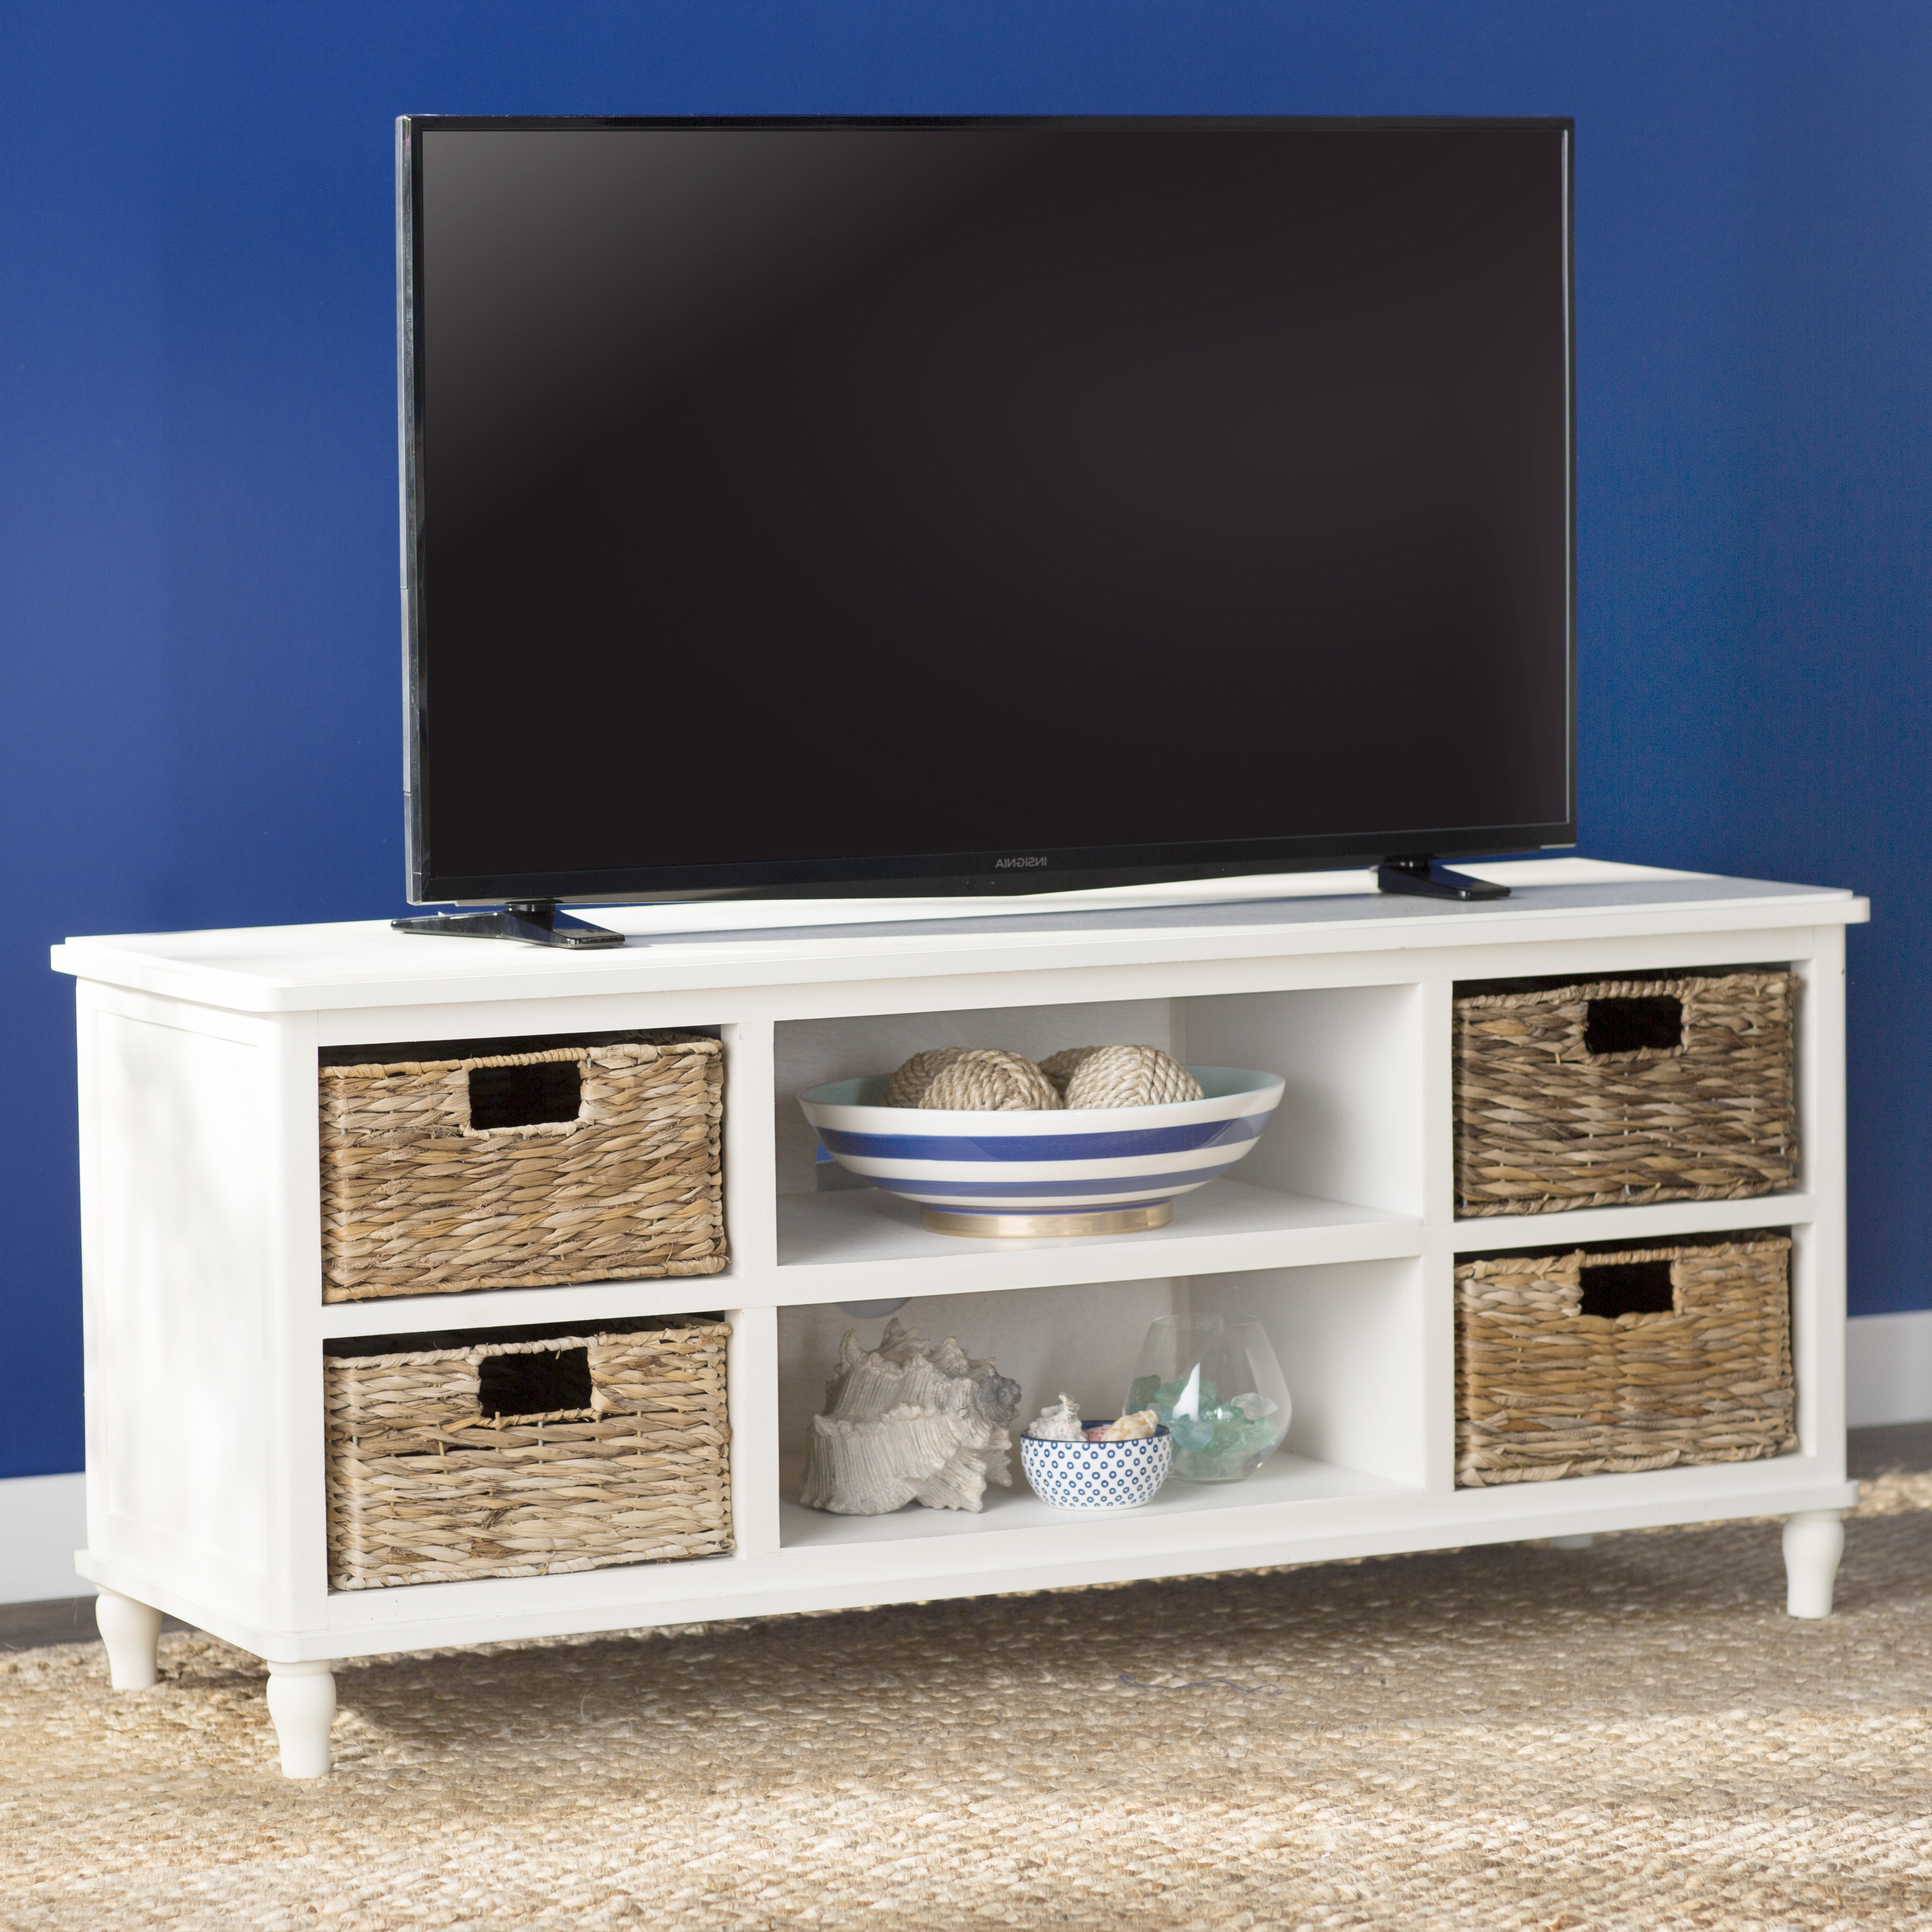 Wicker Rattan Tv Stands | Wayfair With Regard To Century Sky 60 Inch Tv Stands (View 18 of 20)